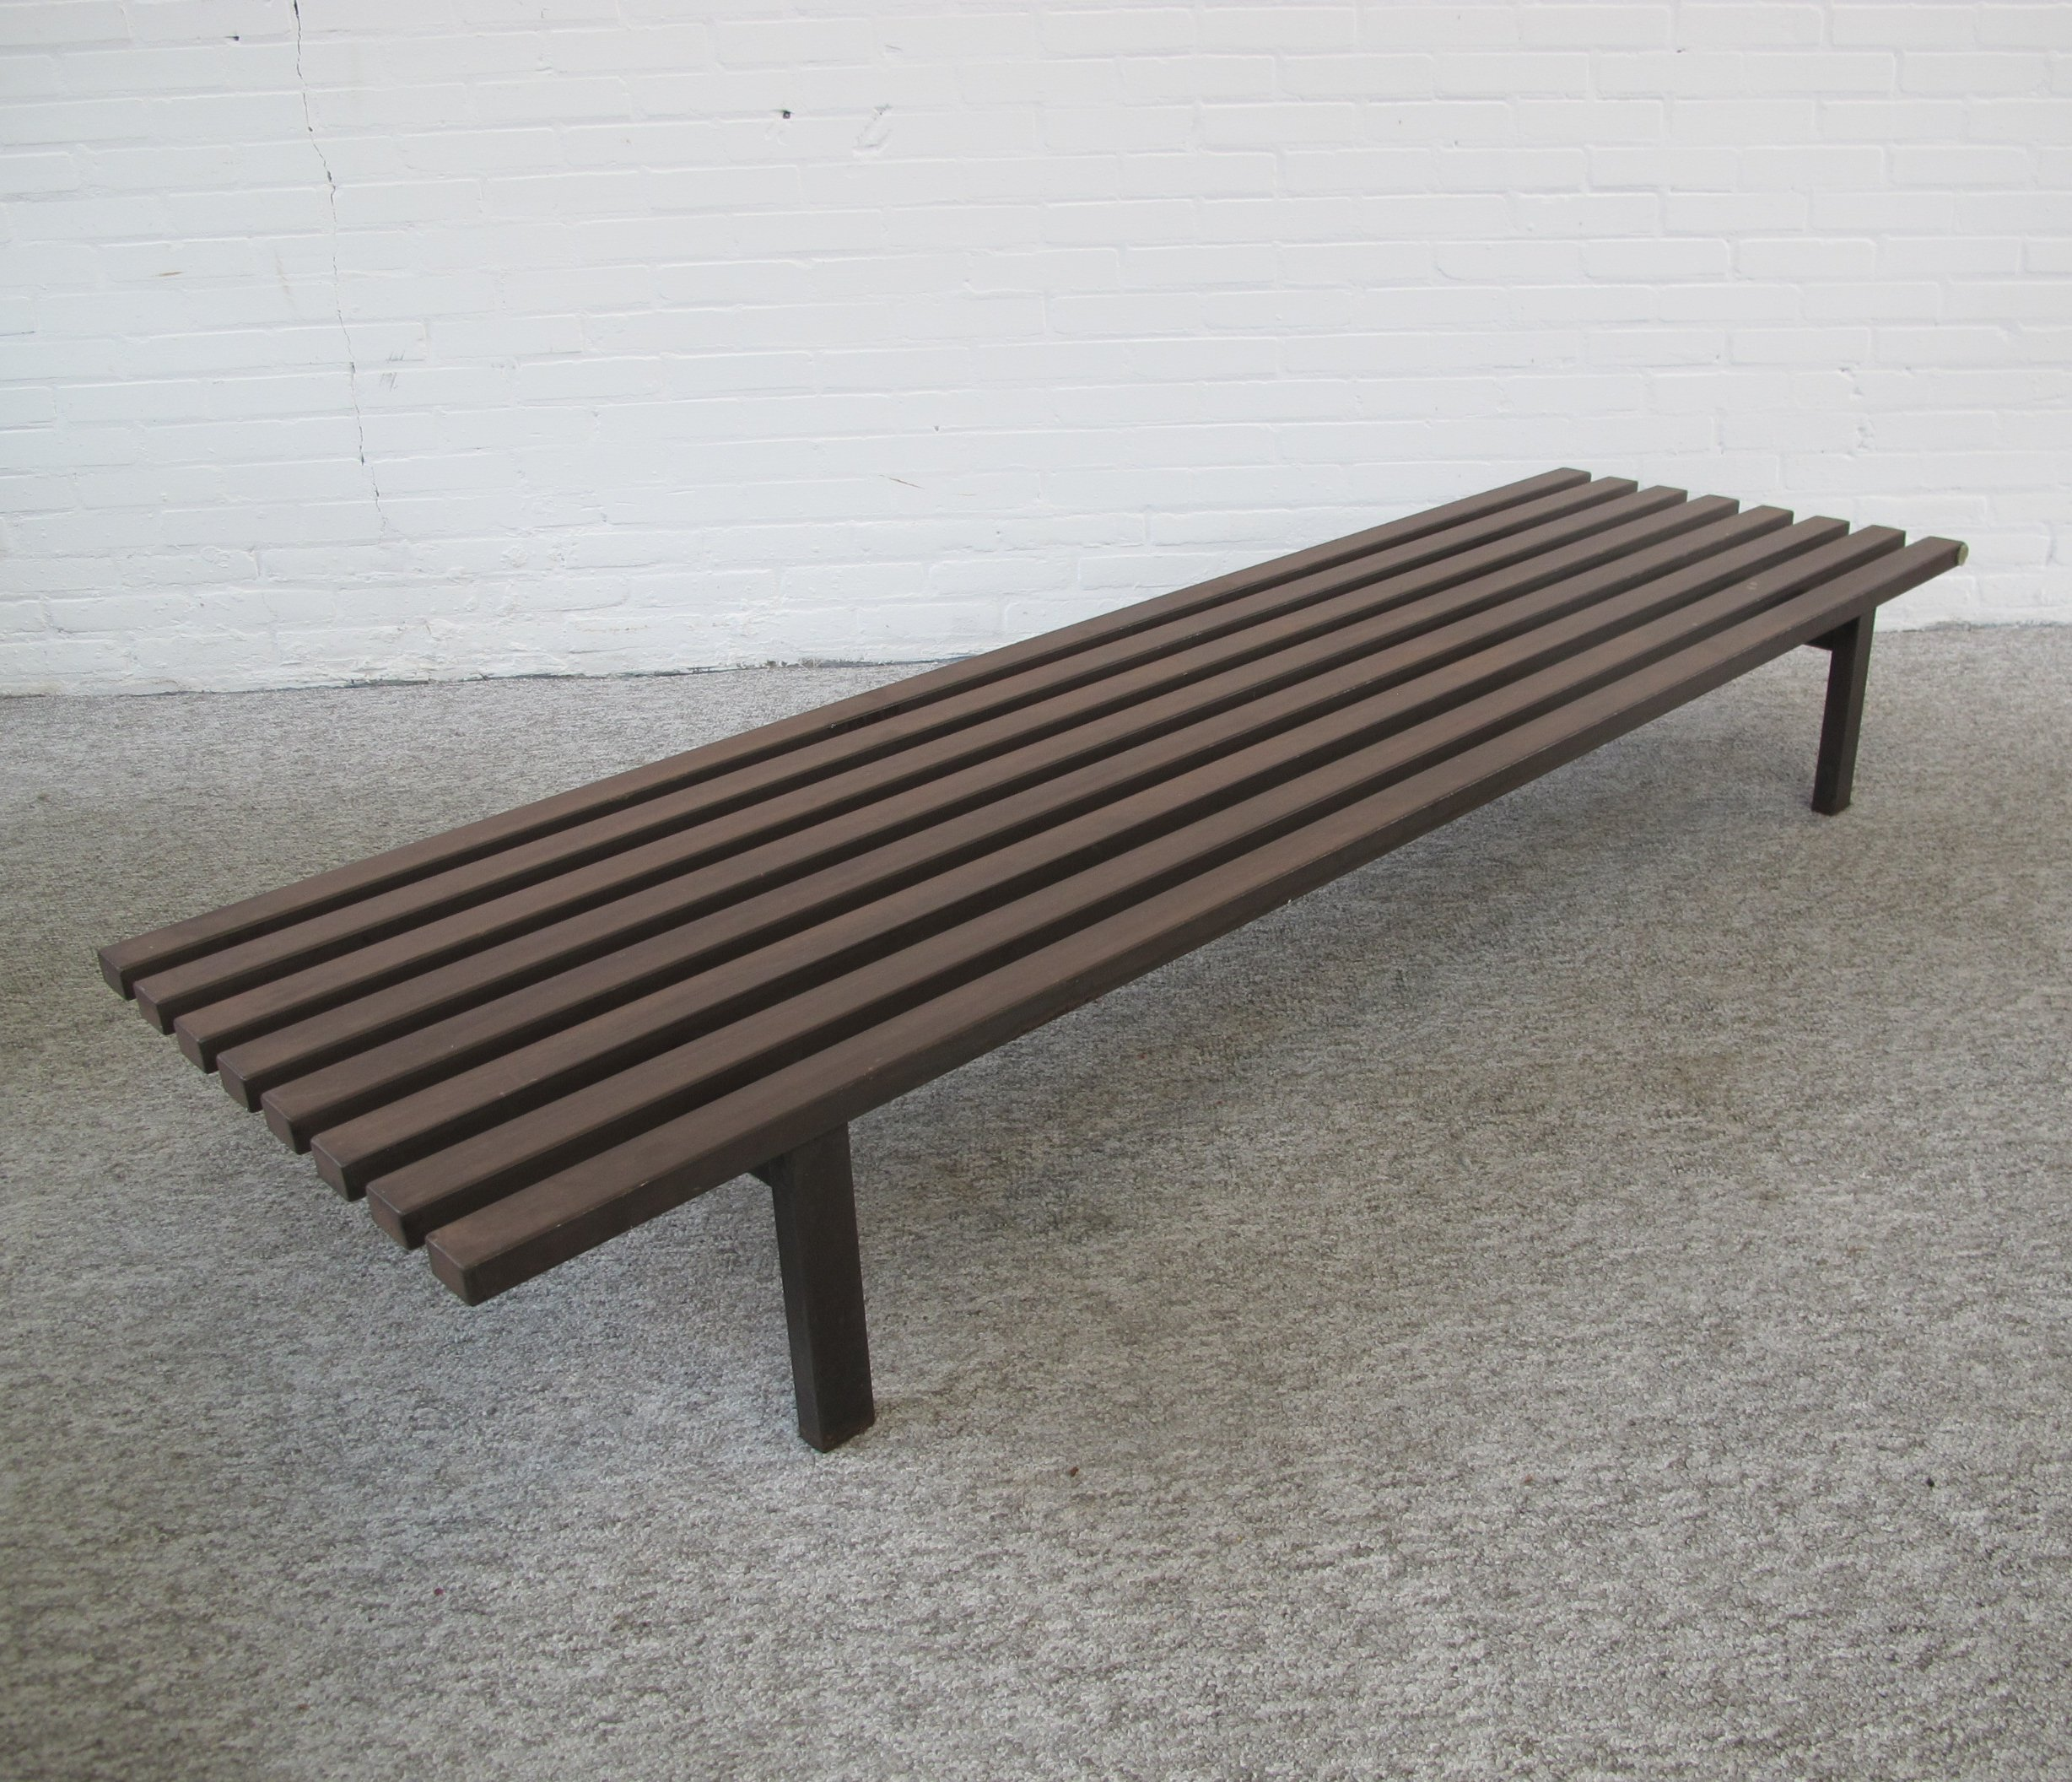 Surprising Vintage Metal Slats Bench From The Sixties 97264 Creativecarmelina Interior Chair Design Creativecarmelinacom